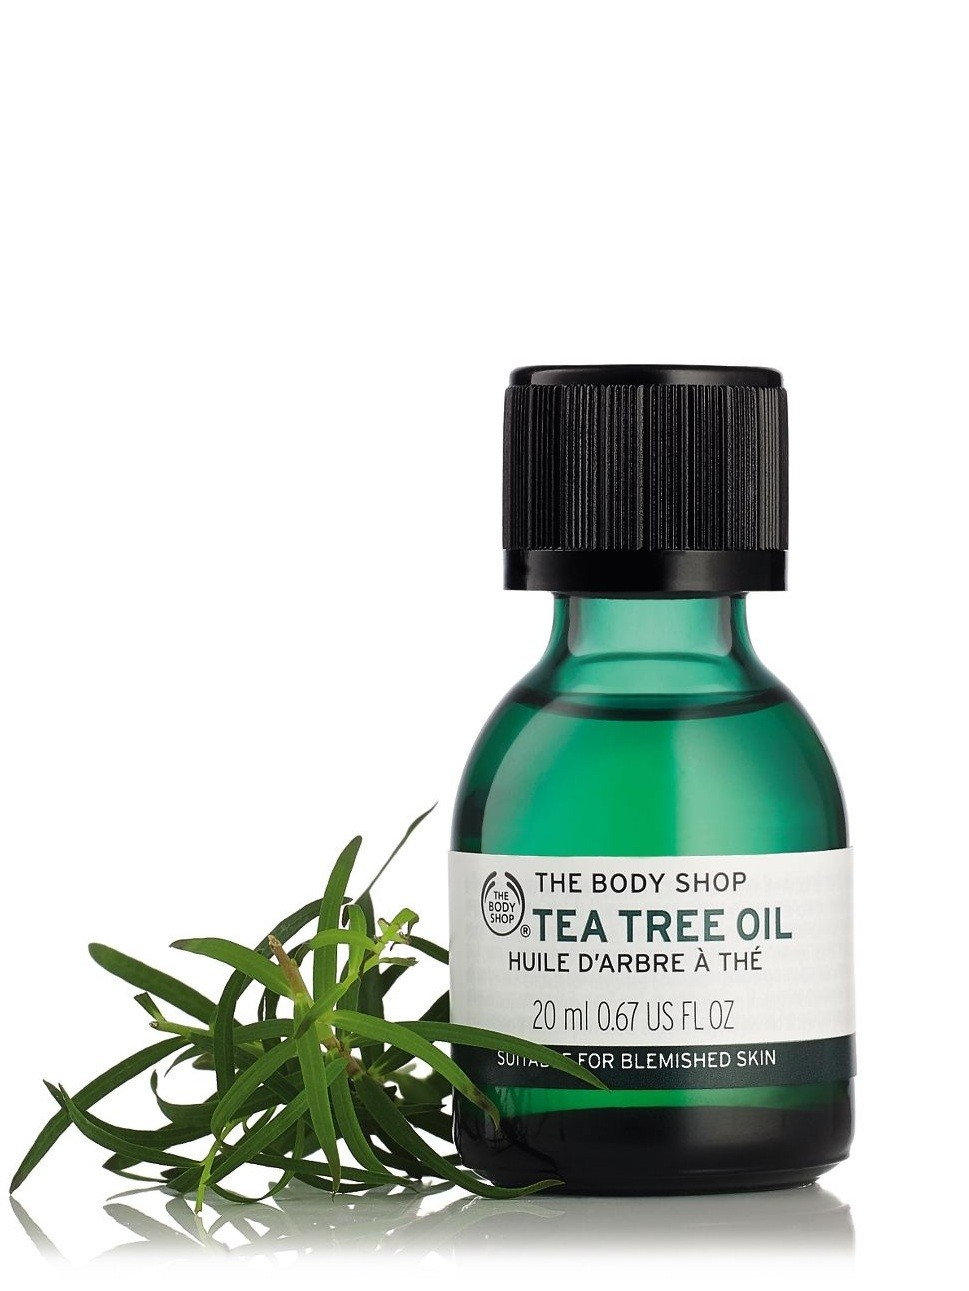 tinh-dau-tra-tri-mun-tea-tree-oil-the-body-shop